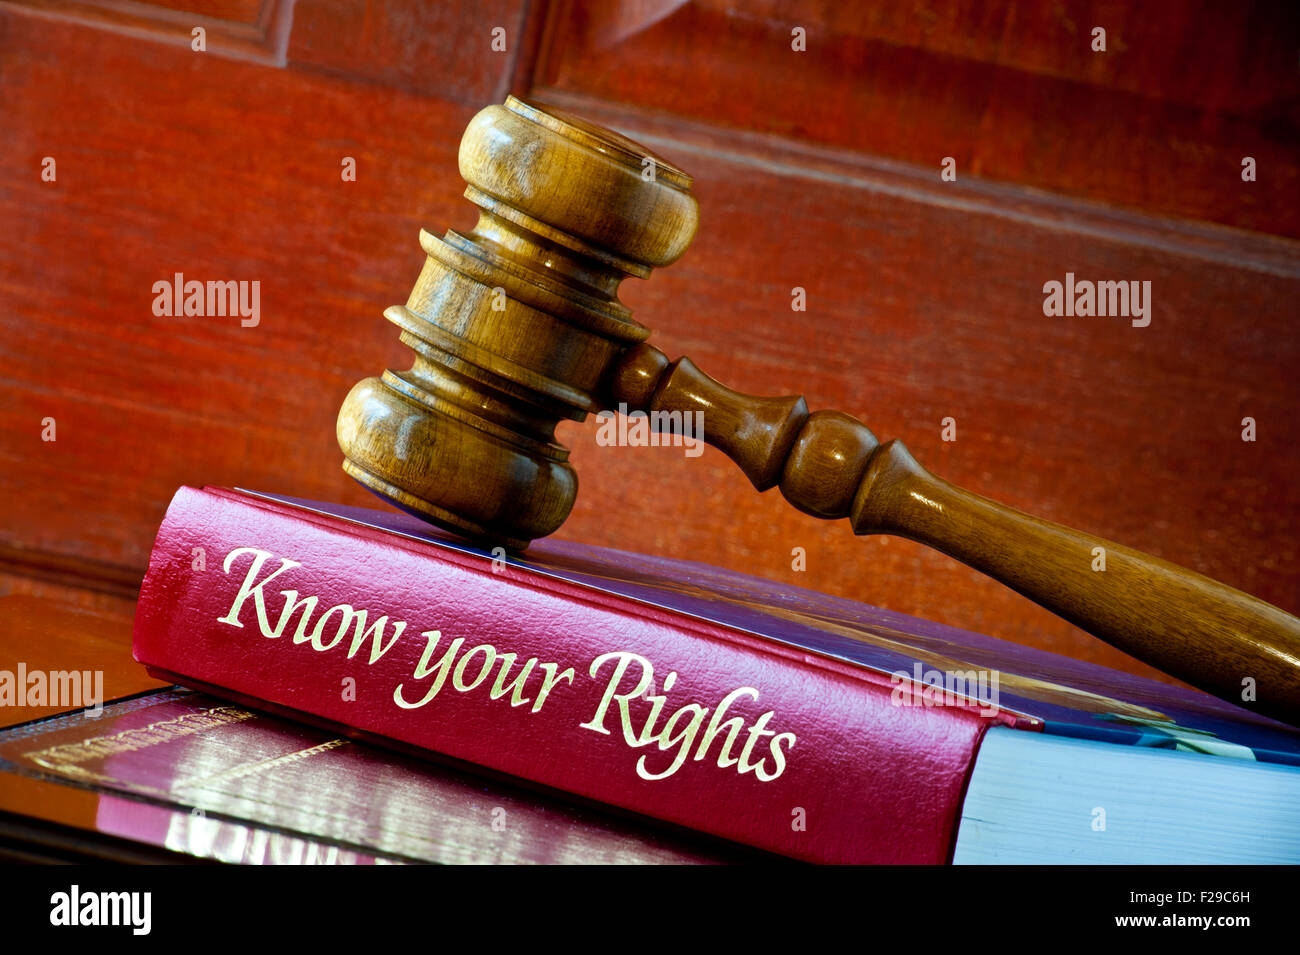 Legal concept of Judges wooden gavel on 'Know your Rights' personal consumer legal advice book on leather - Stock Image